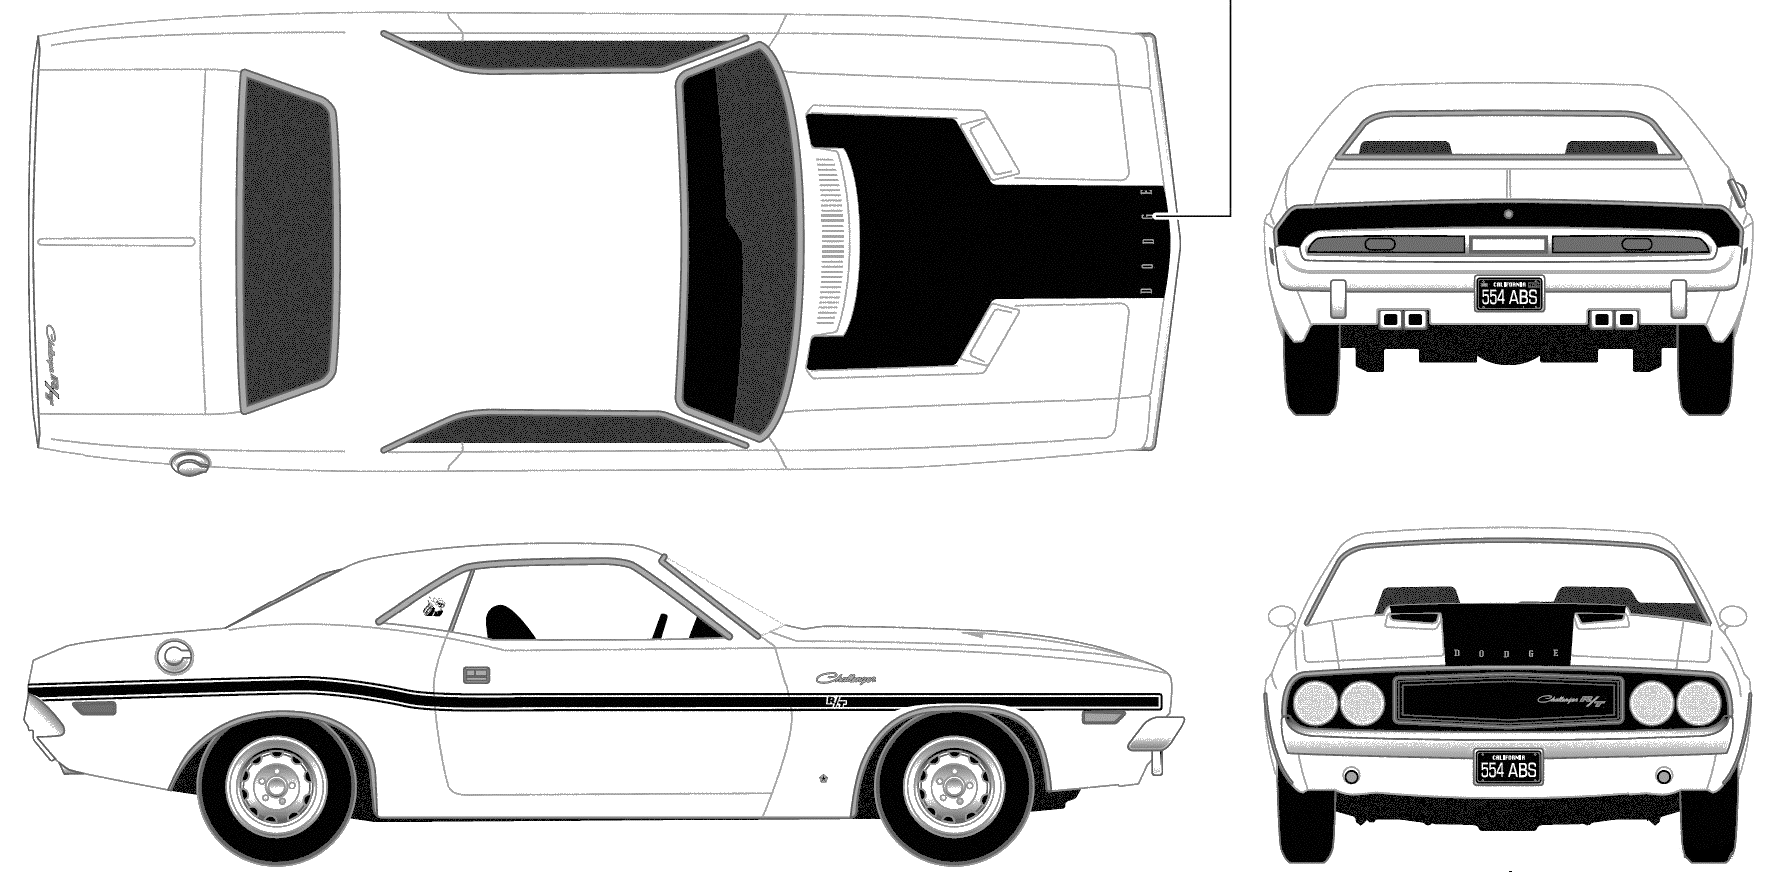 Dodge Challenger 1970 Blueprint - Download free blueprint for 3D ...